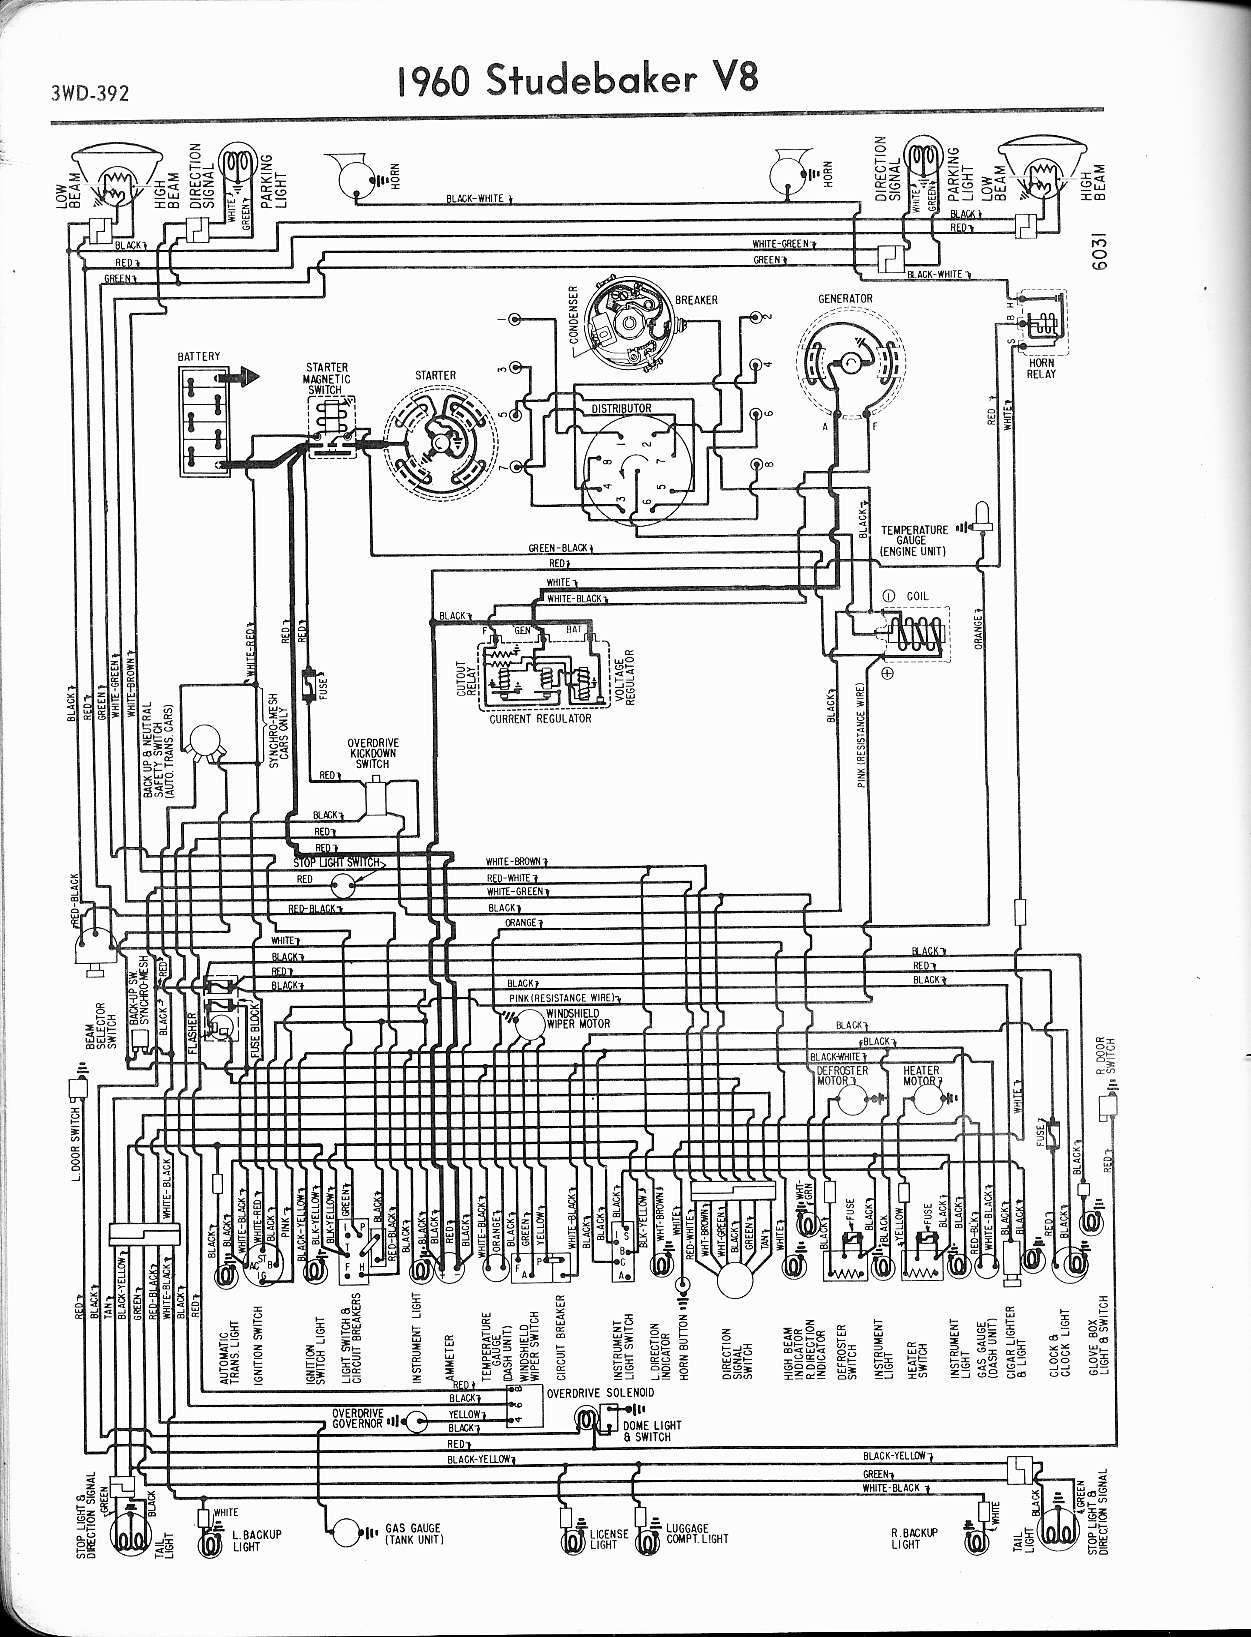 Old Car Manual Project Wiring Diagrams Schematics Studebaker Harness The Diagram 57 Ford Truck